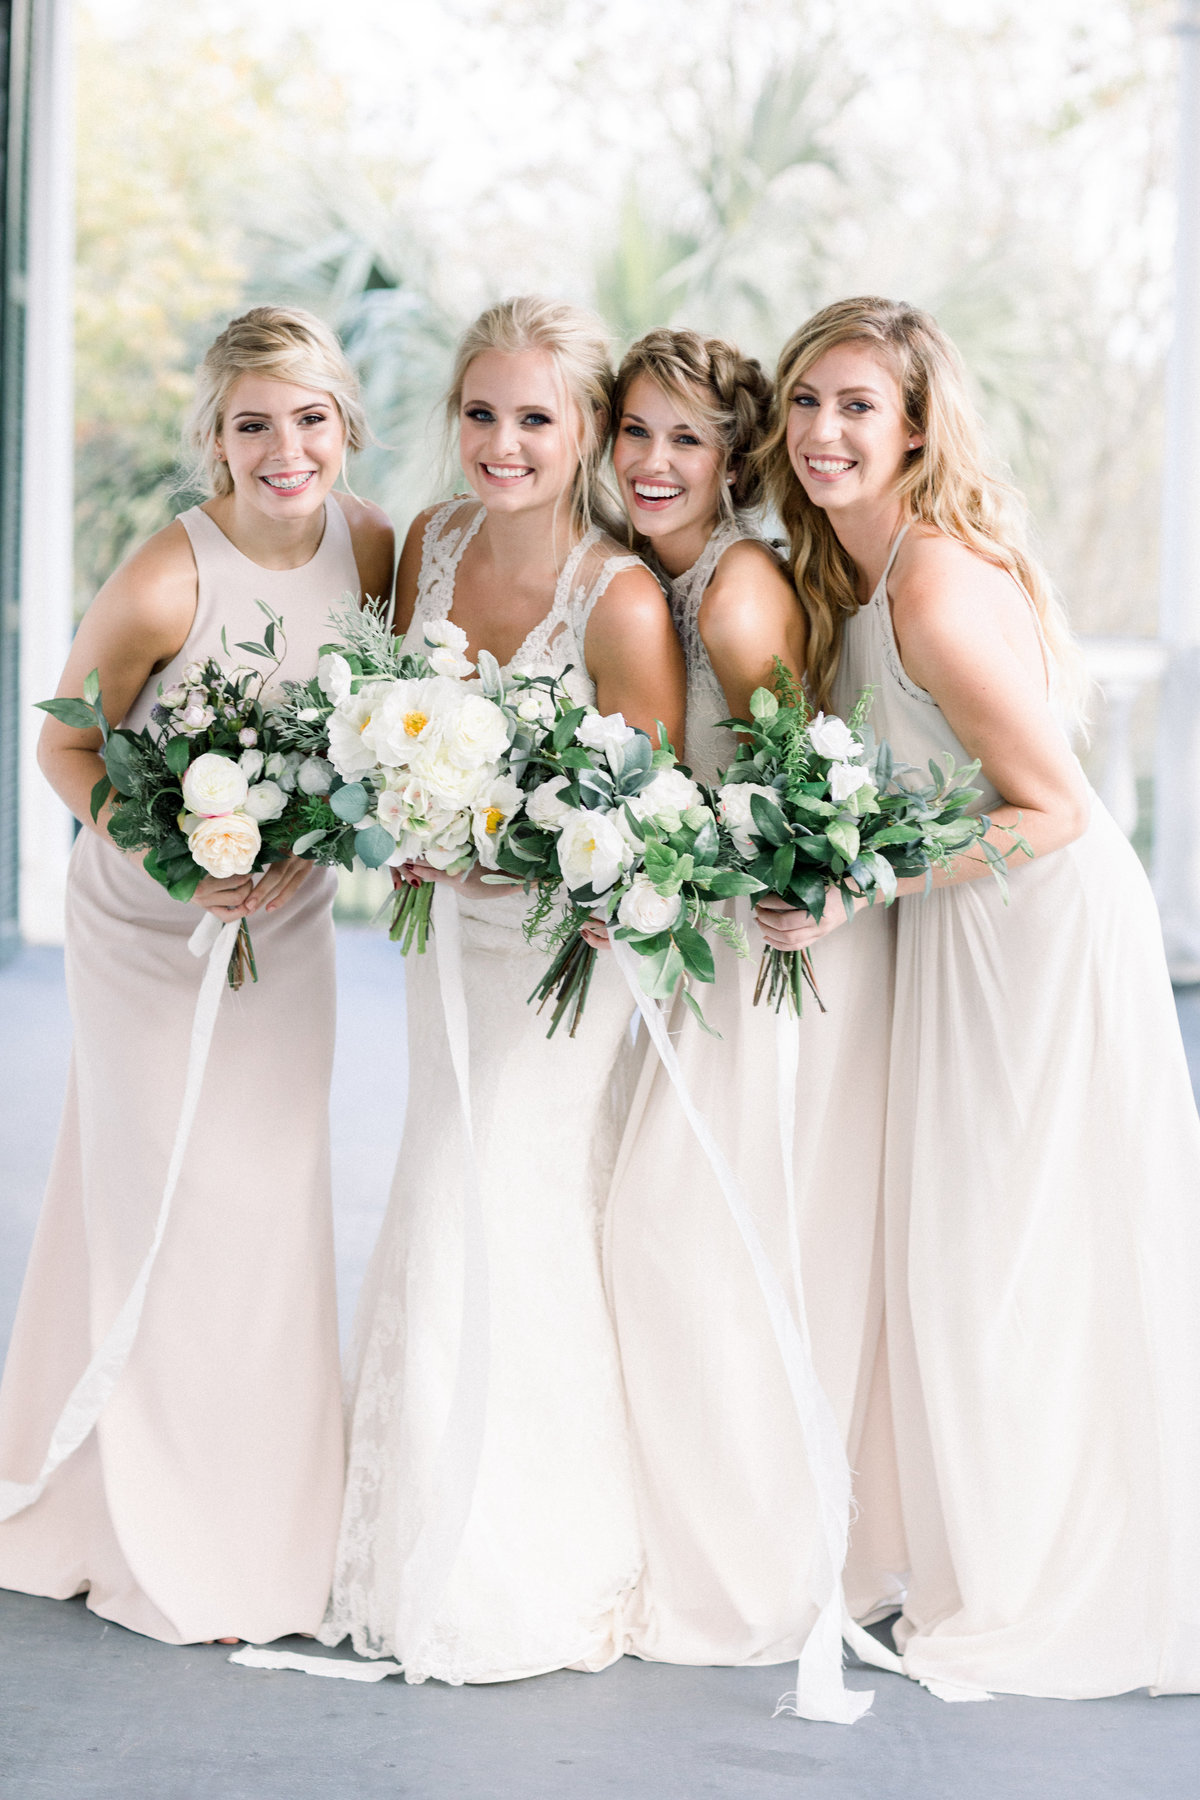 Bride and Bridesmaids-7928